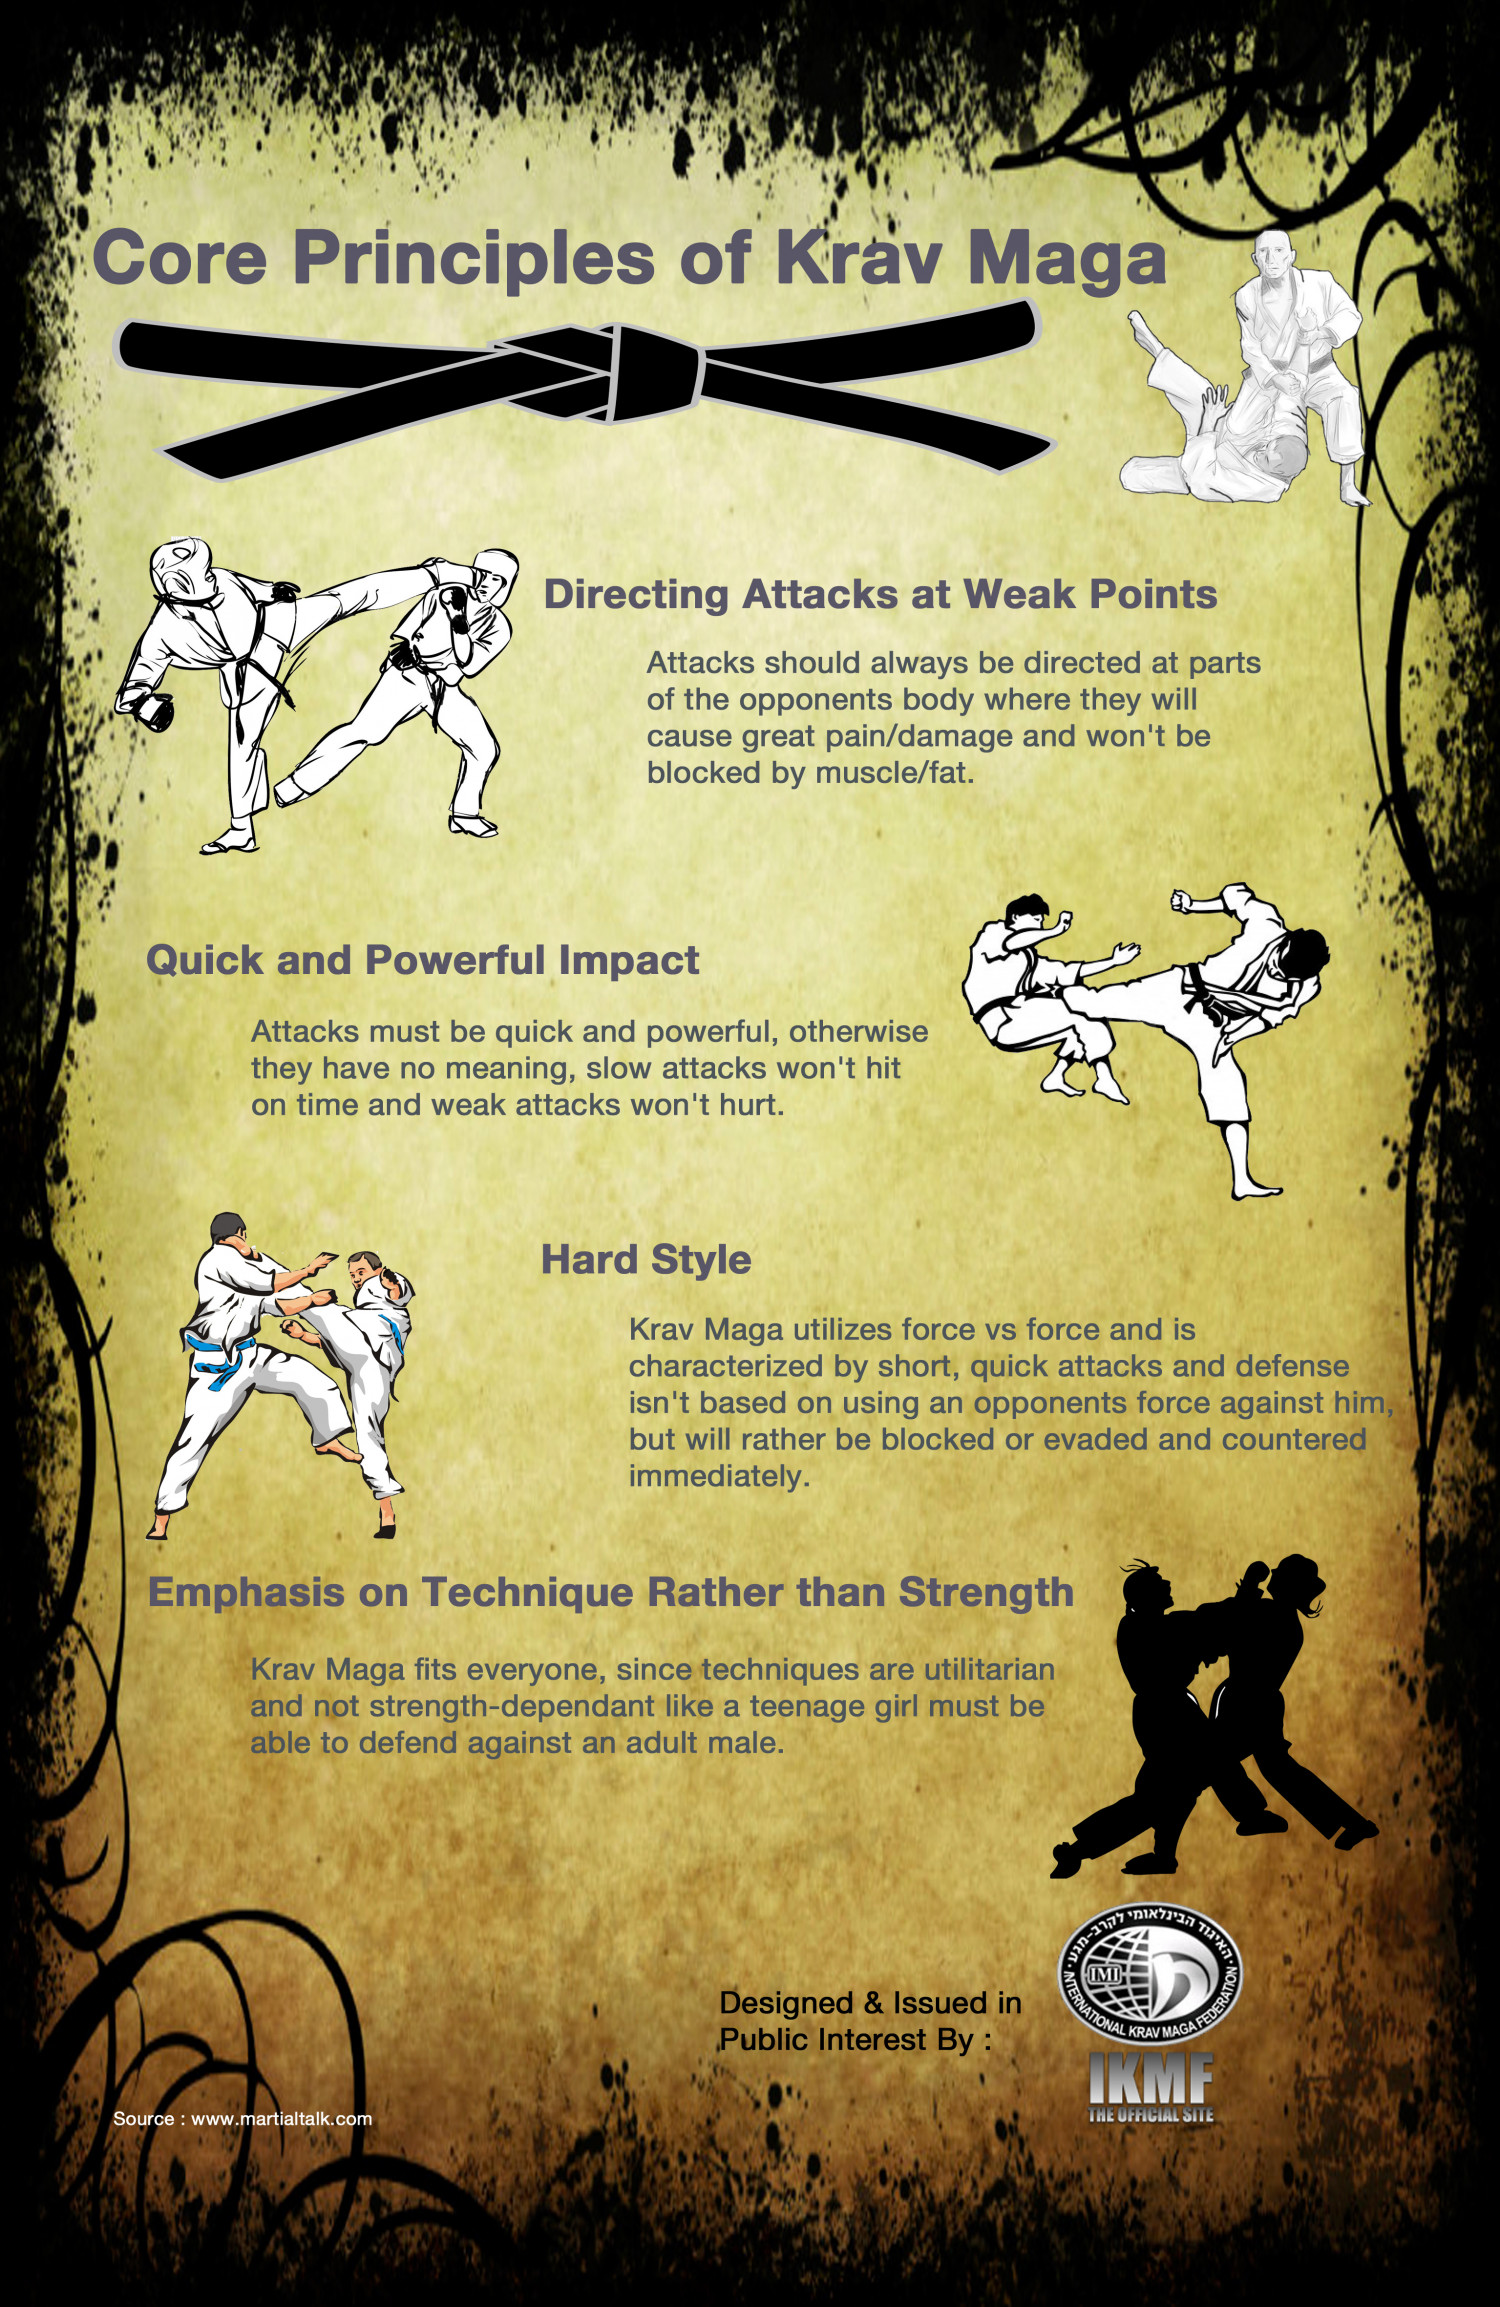 Core Principles of Krav Maga Infographic